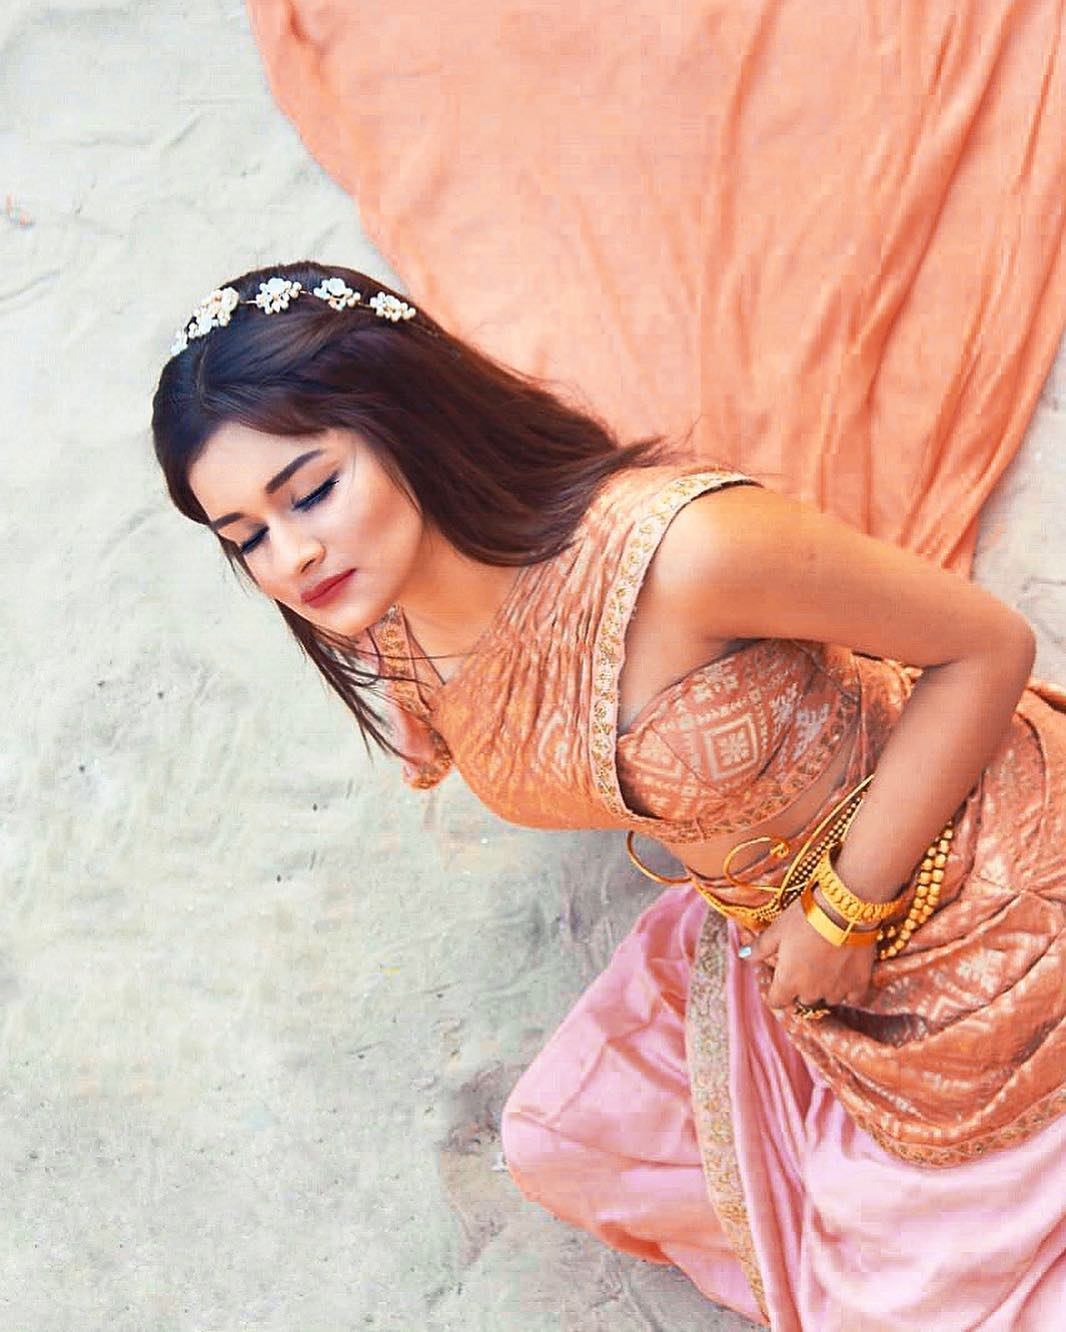 Anushka sen cute and hot bollywood Indian actress model unseen latest very beautiful and sexy wedding smile images of her body curve south ragalhari navel armpit juicy lips web series tv serials girl viral pics saari and bikini booty thigh photos of Instagram pragnent santabanta wallpapers collection.